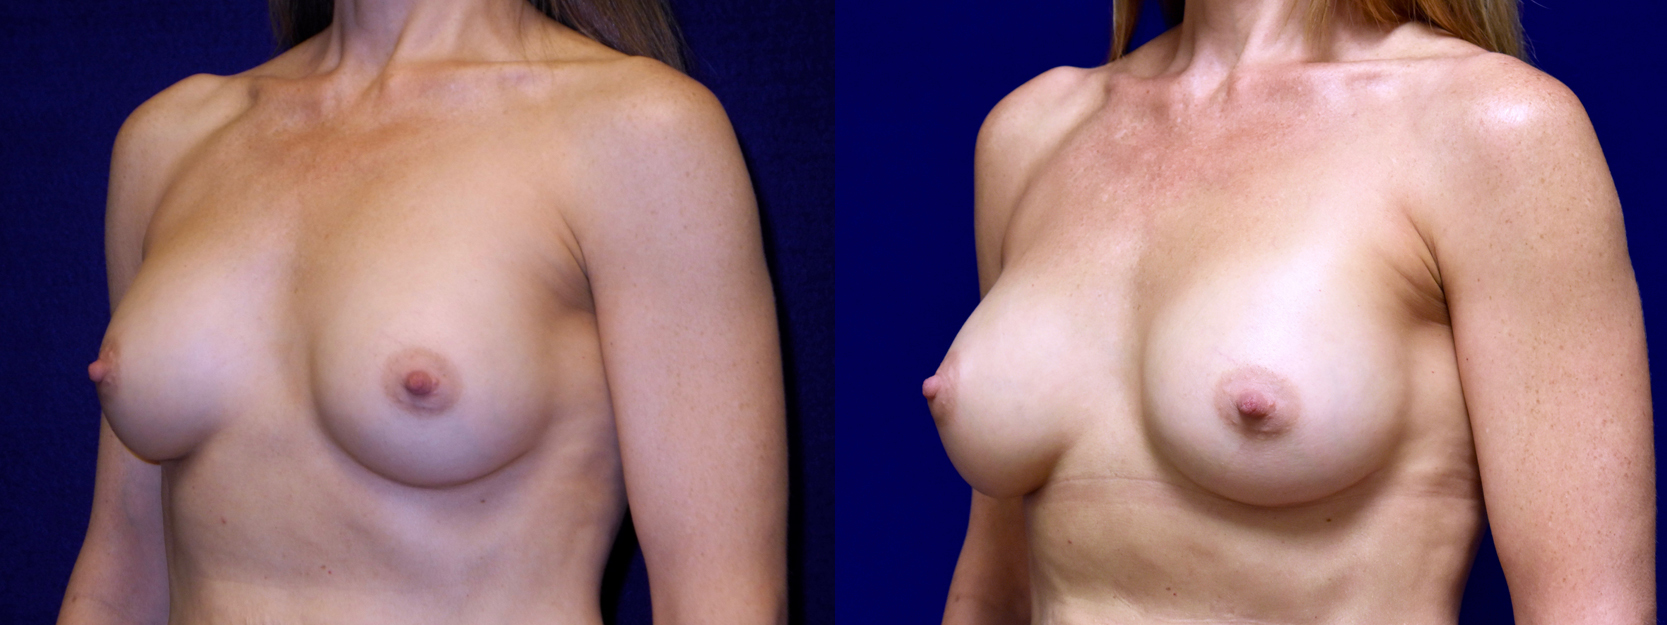 Left 3/4 View - Breast Implant Revision